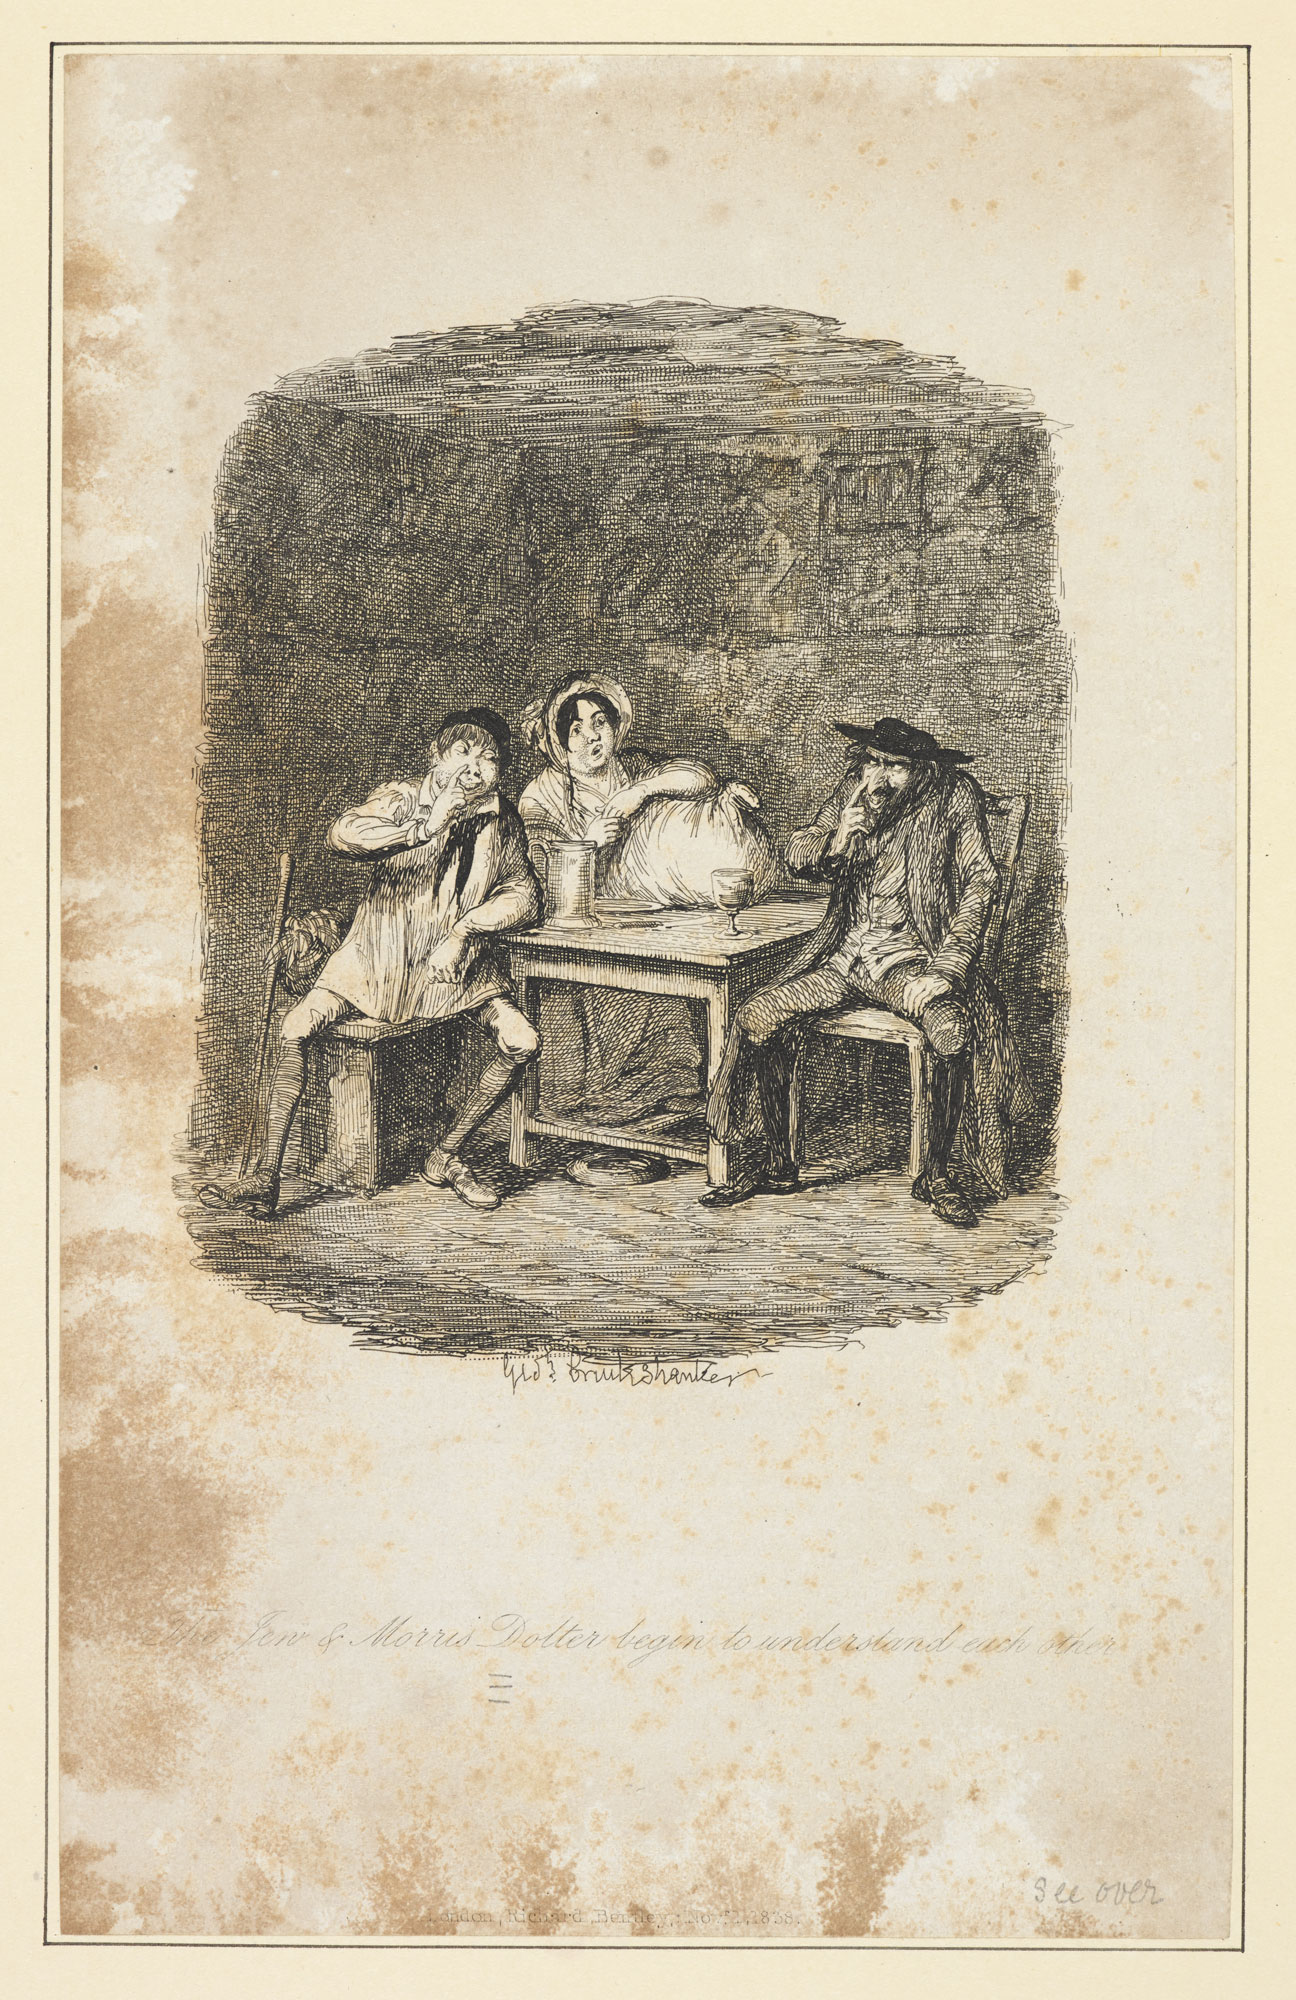 Proof engraving of 'The Jew and Morris Dolter [sic] begin to understand each other' by George Cruikshank for Oliver Twist [page: 106]